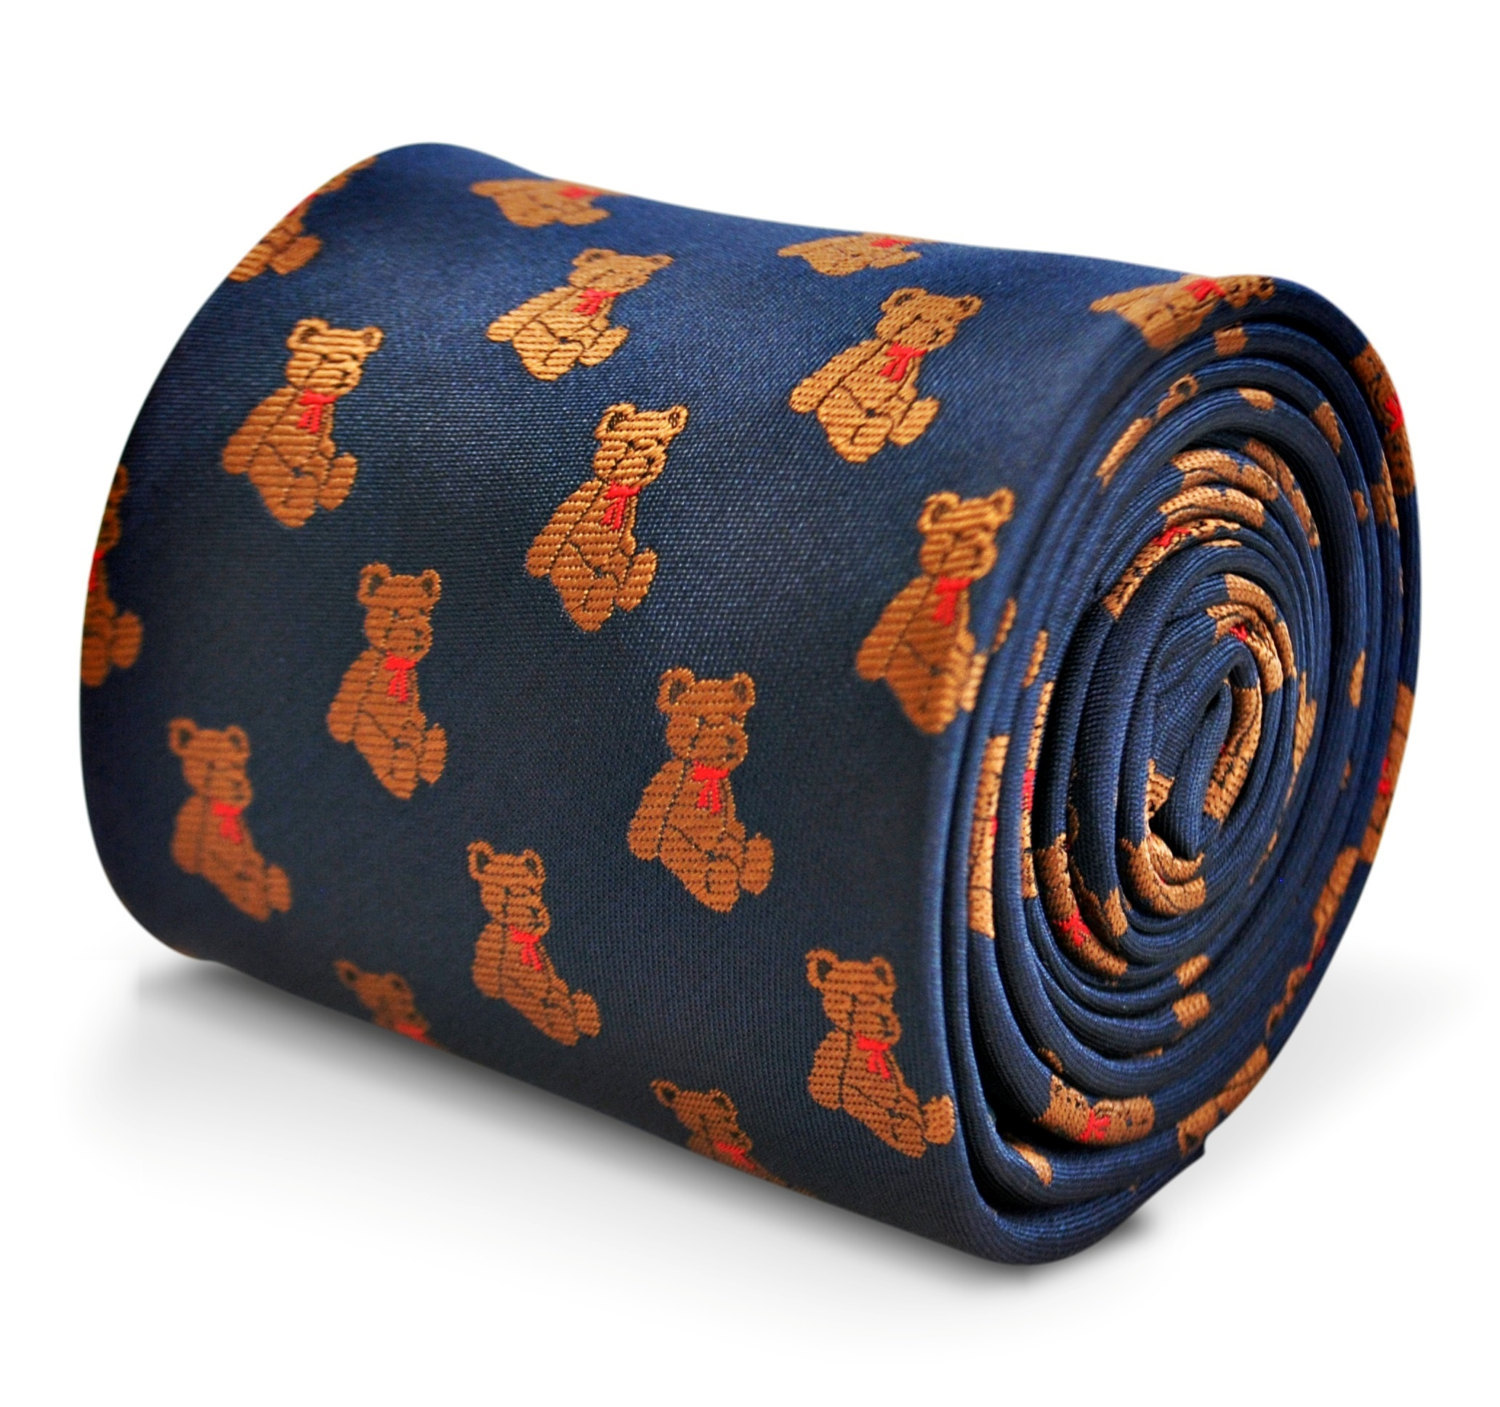 navy tie with teddy bear embroidered design with signature floral design to the